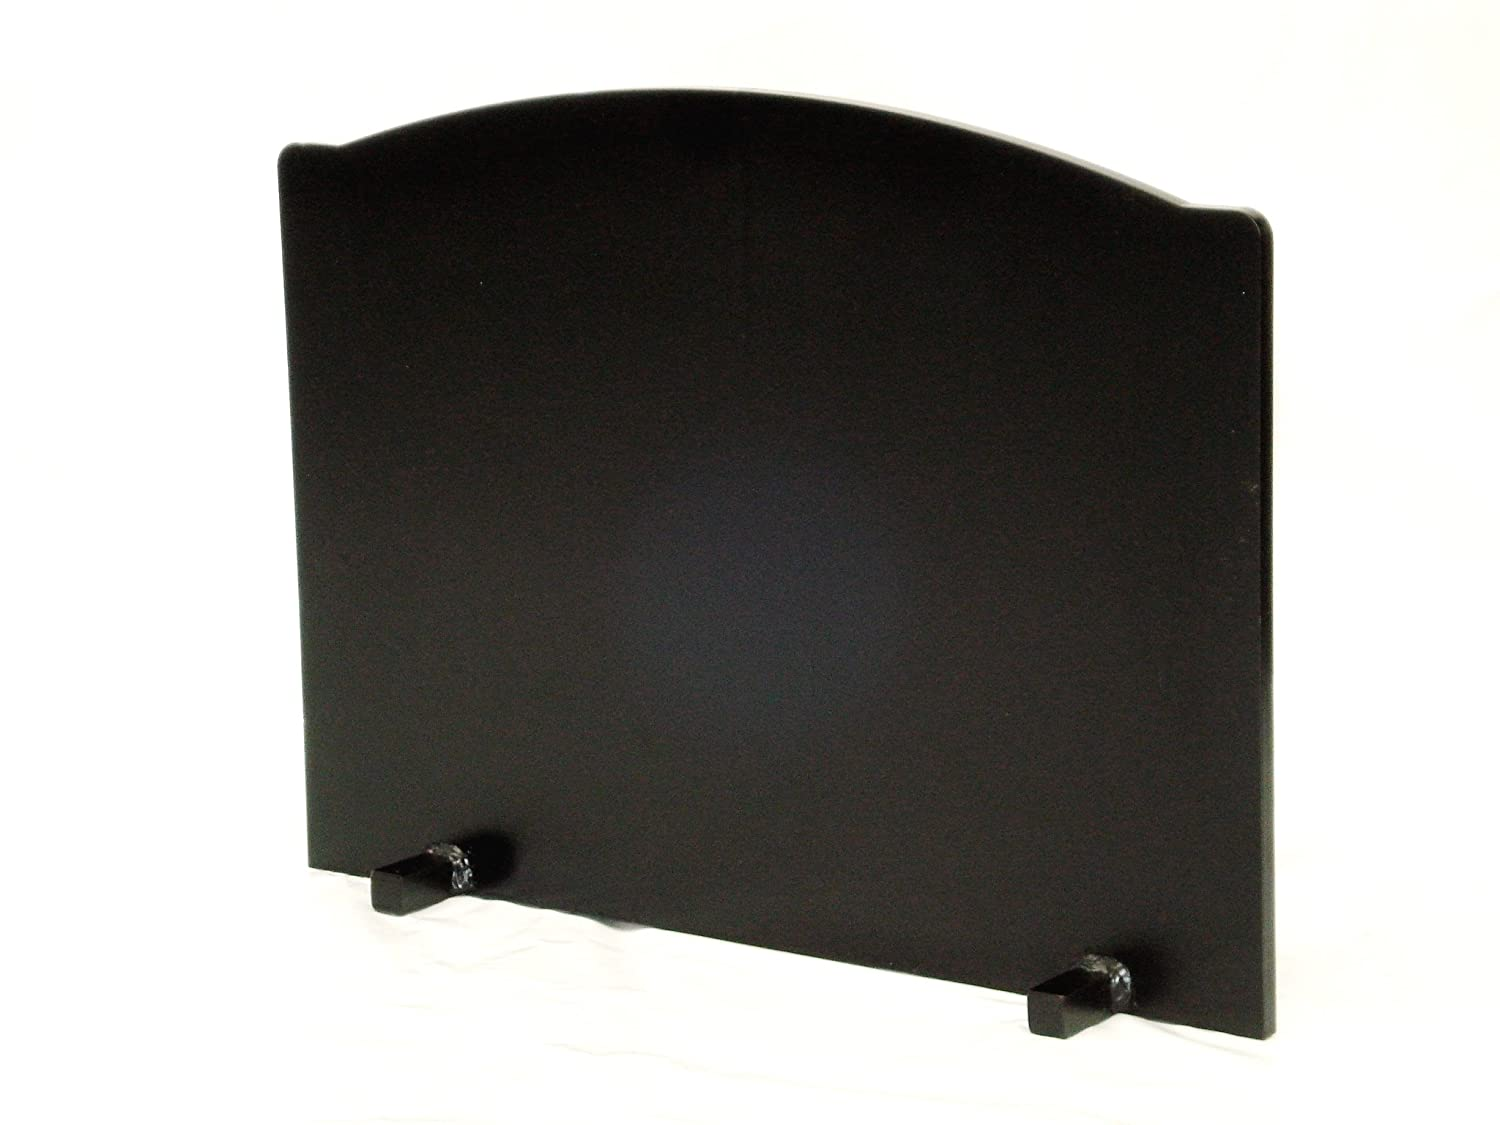 Discover Fireplace Back Plates on Amazon.com at a great price. Our Fireplaces & Accessories category offers a great selection of Fireplace Back Plates and more. Free Shipping on Prime eligible orders.